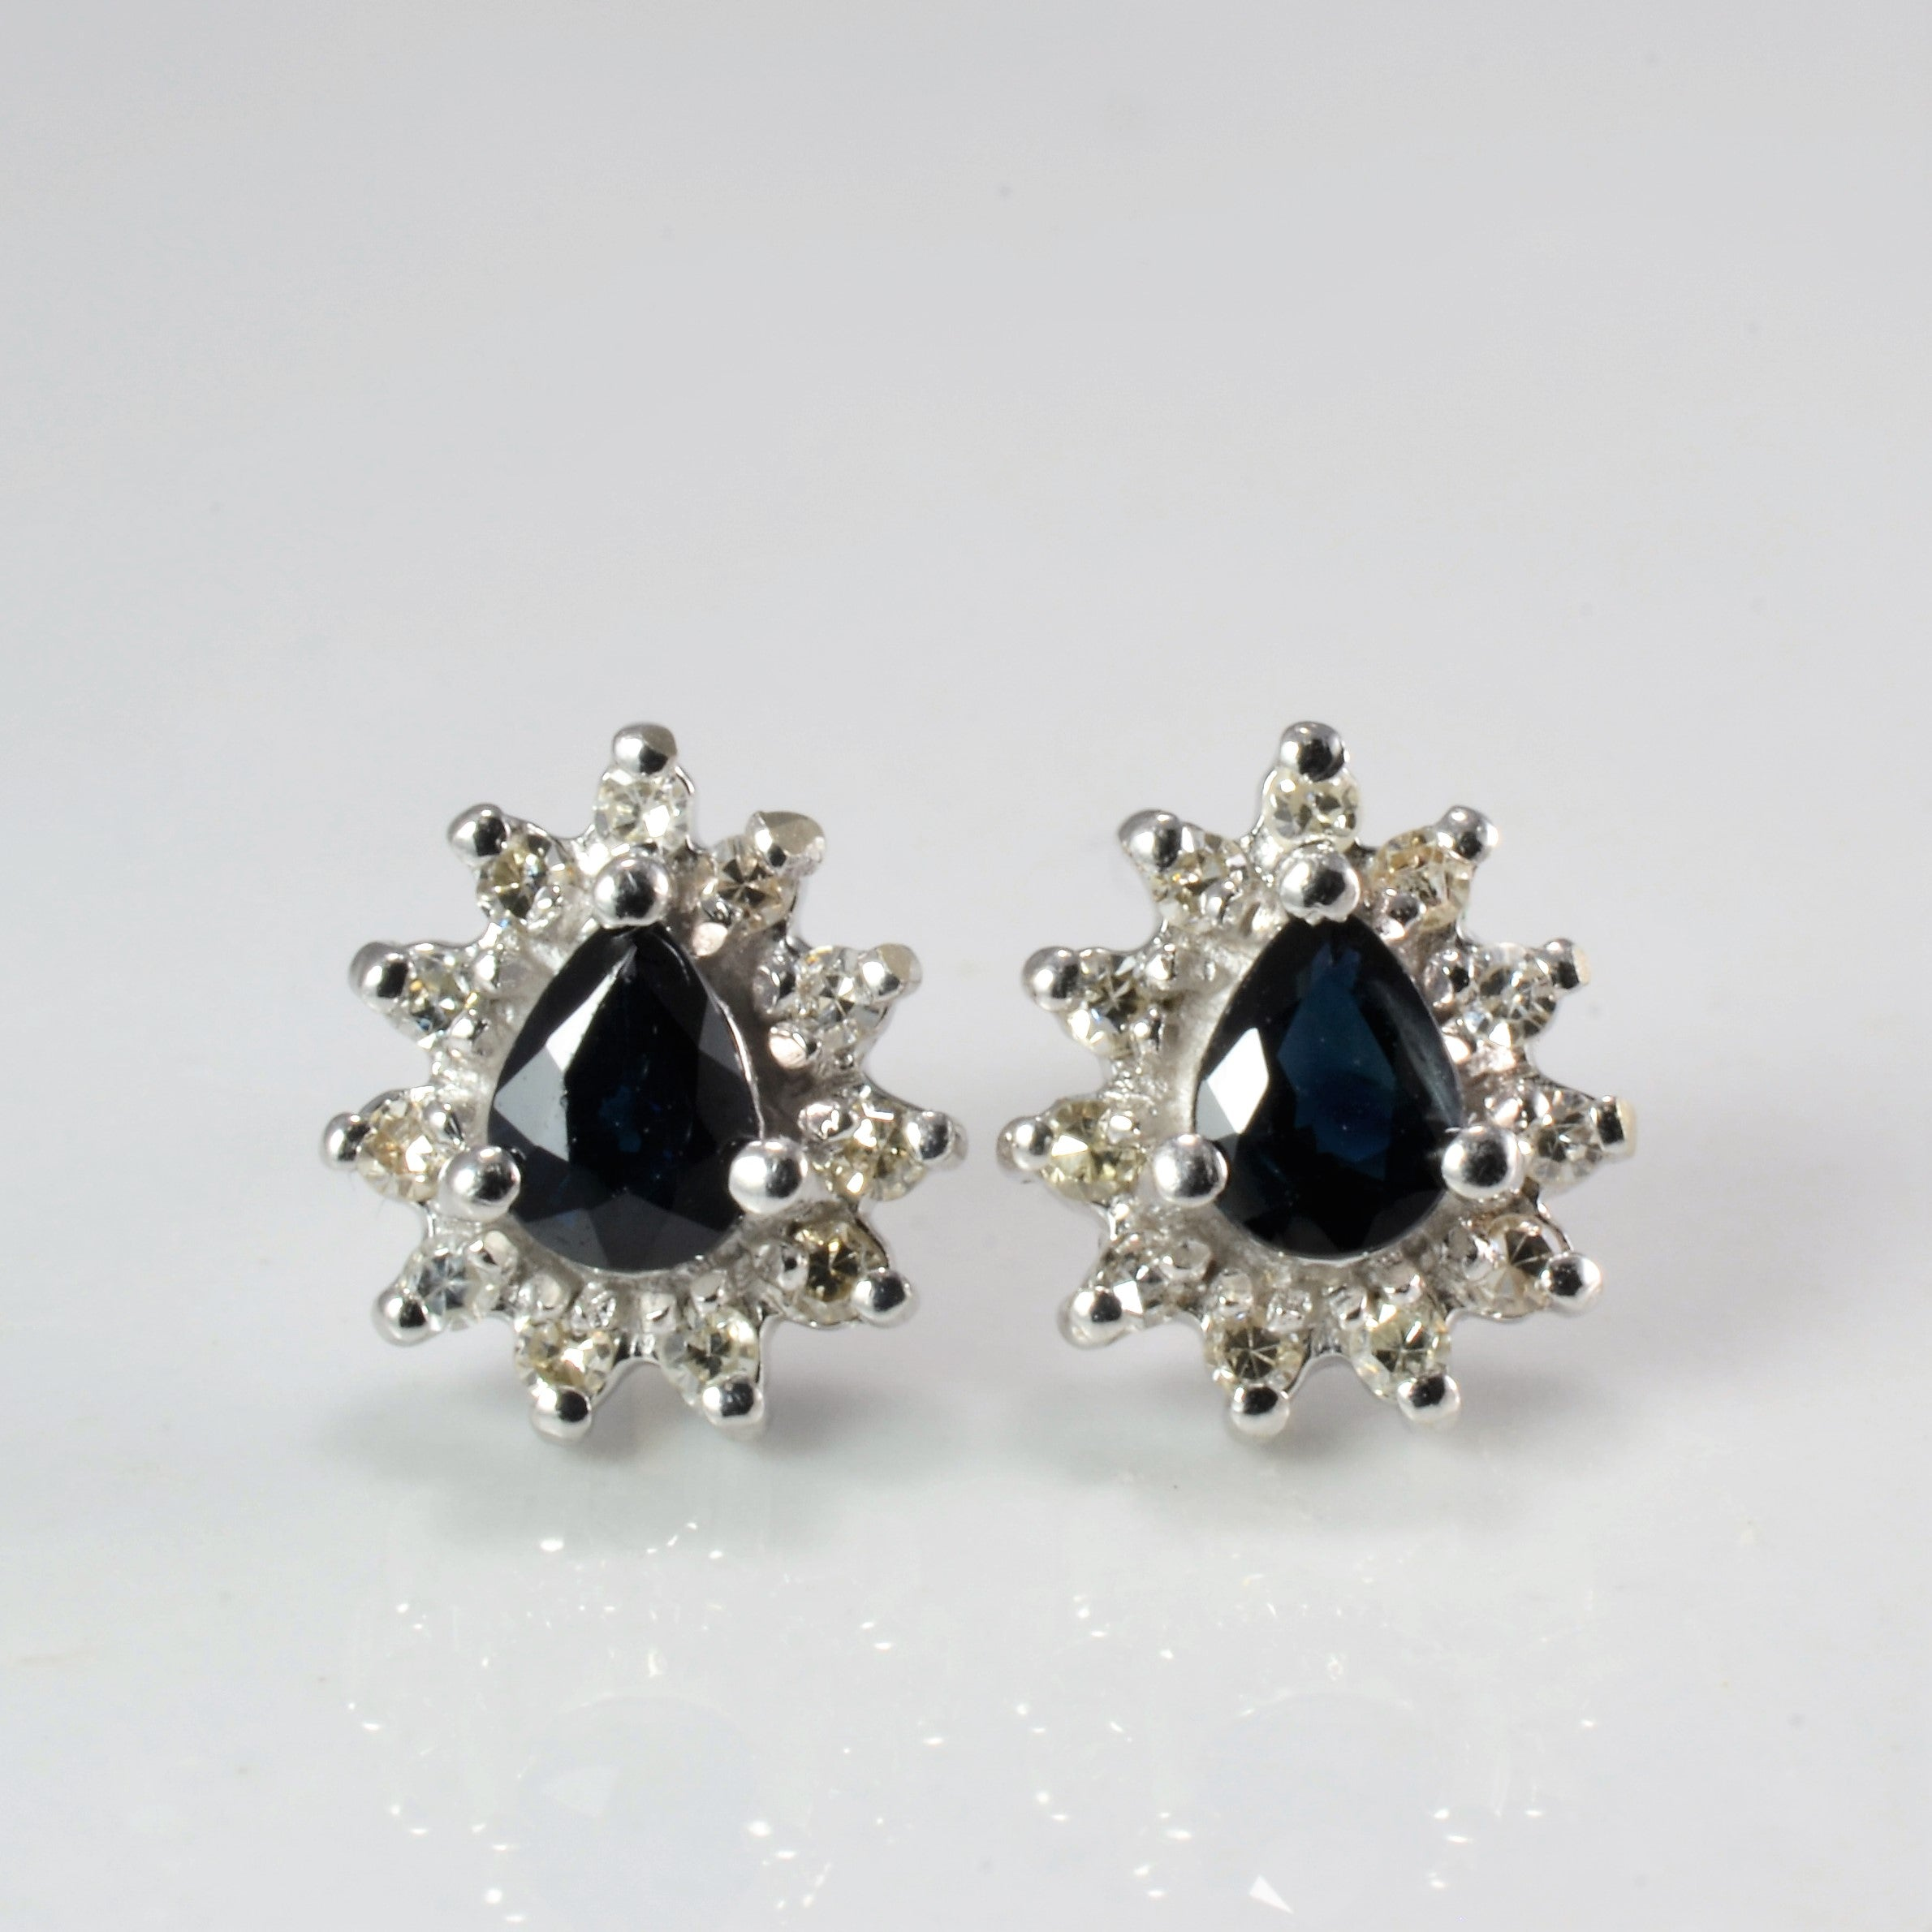 Sapphire & Diamond Stud Earrings | 0.07 ctw |